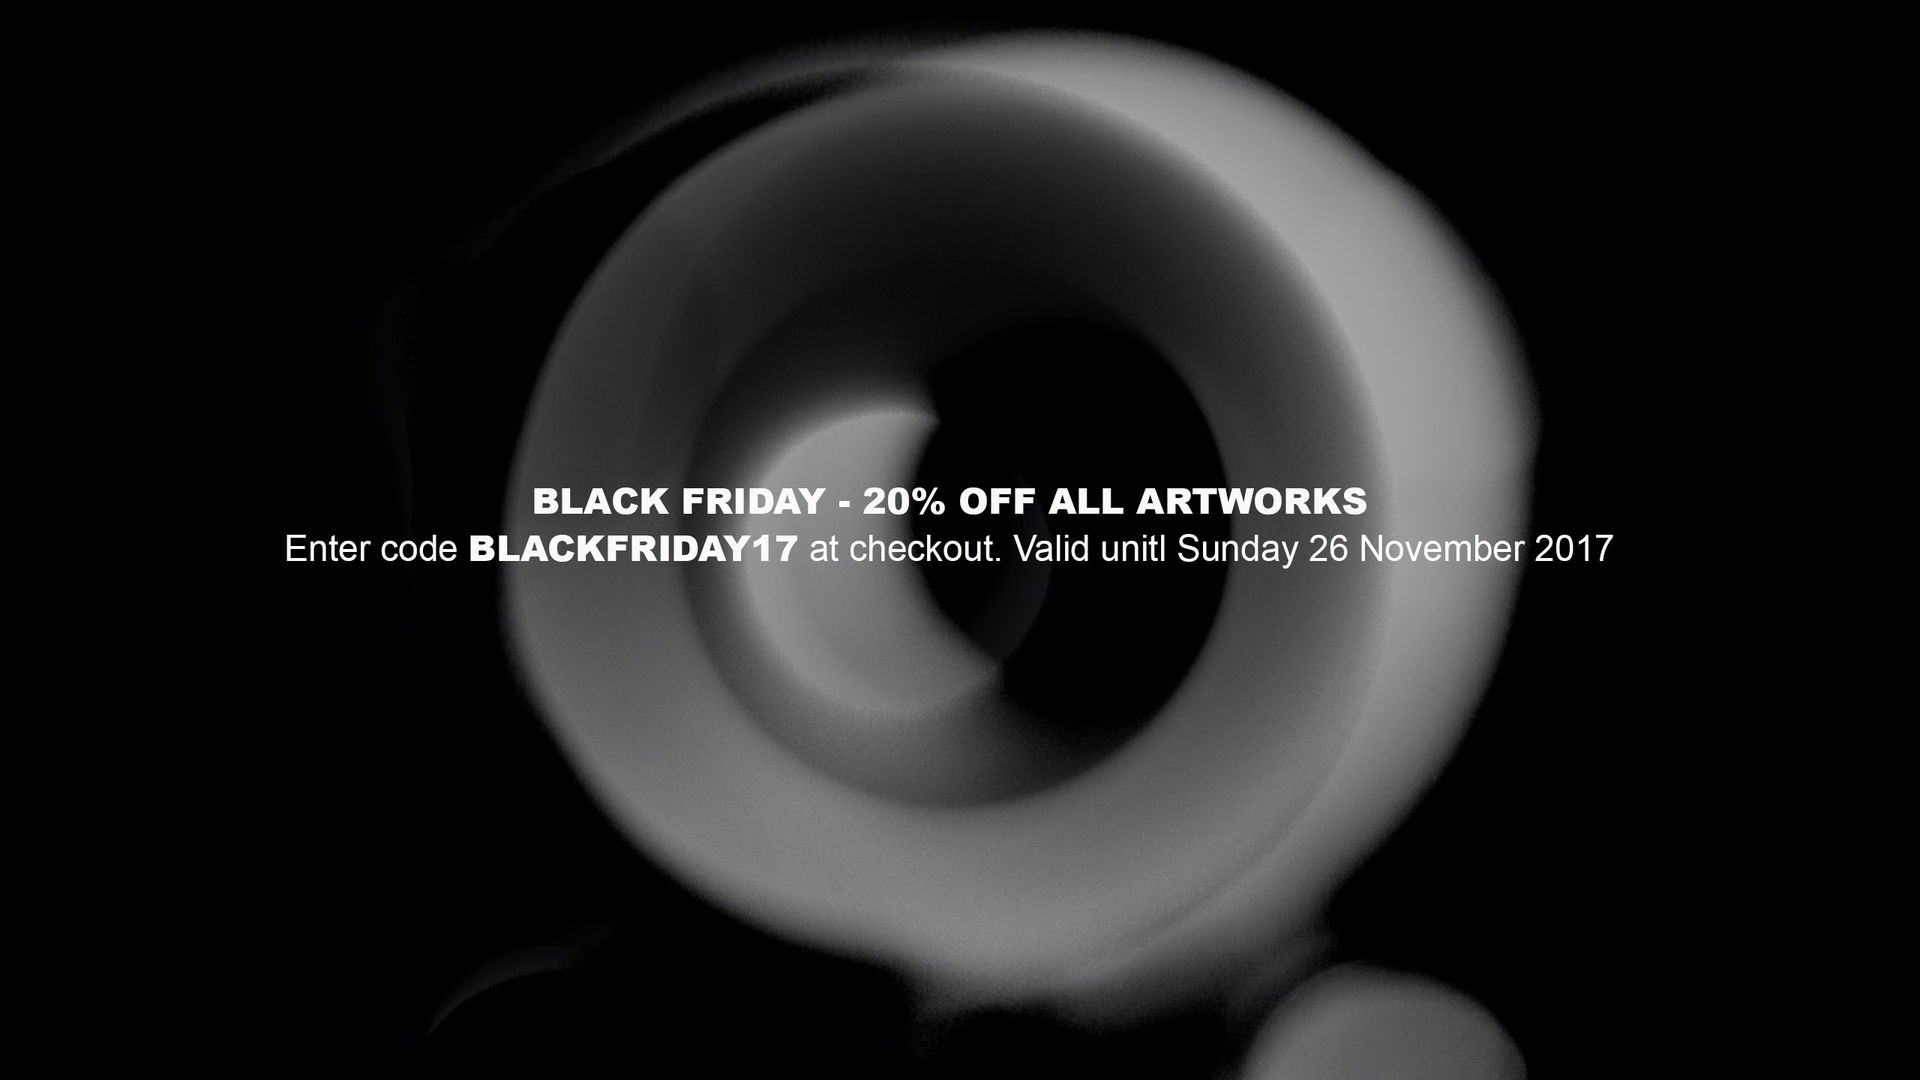 Black Friday Offers From Sedition